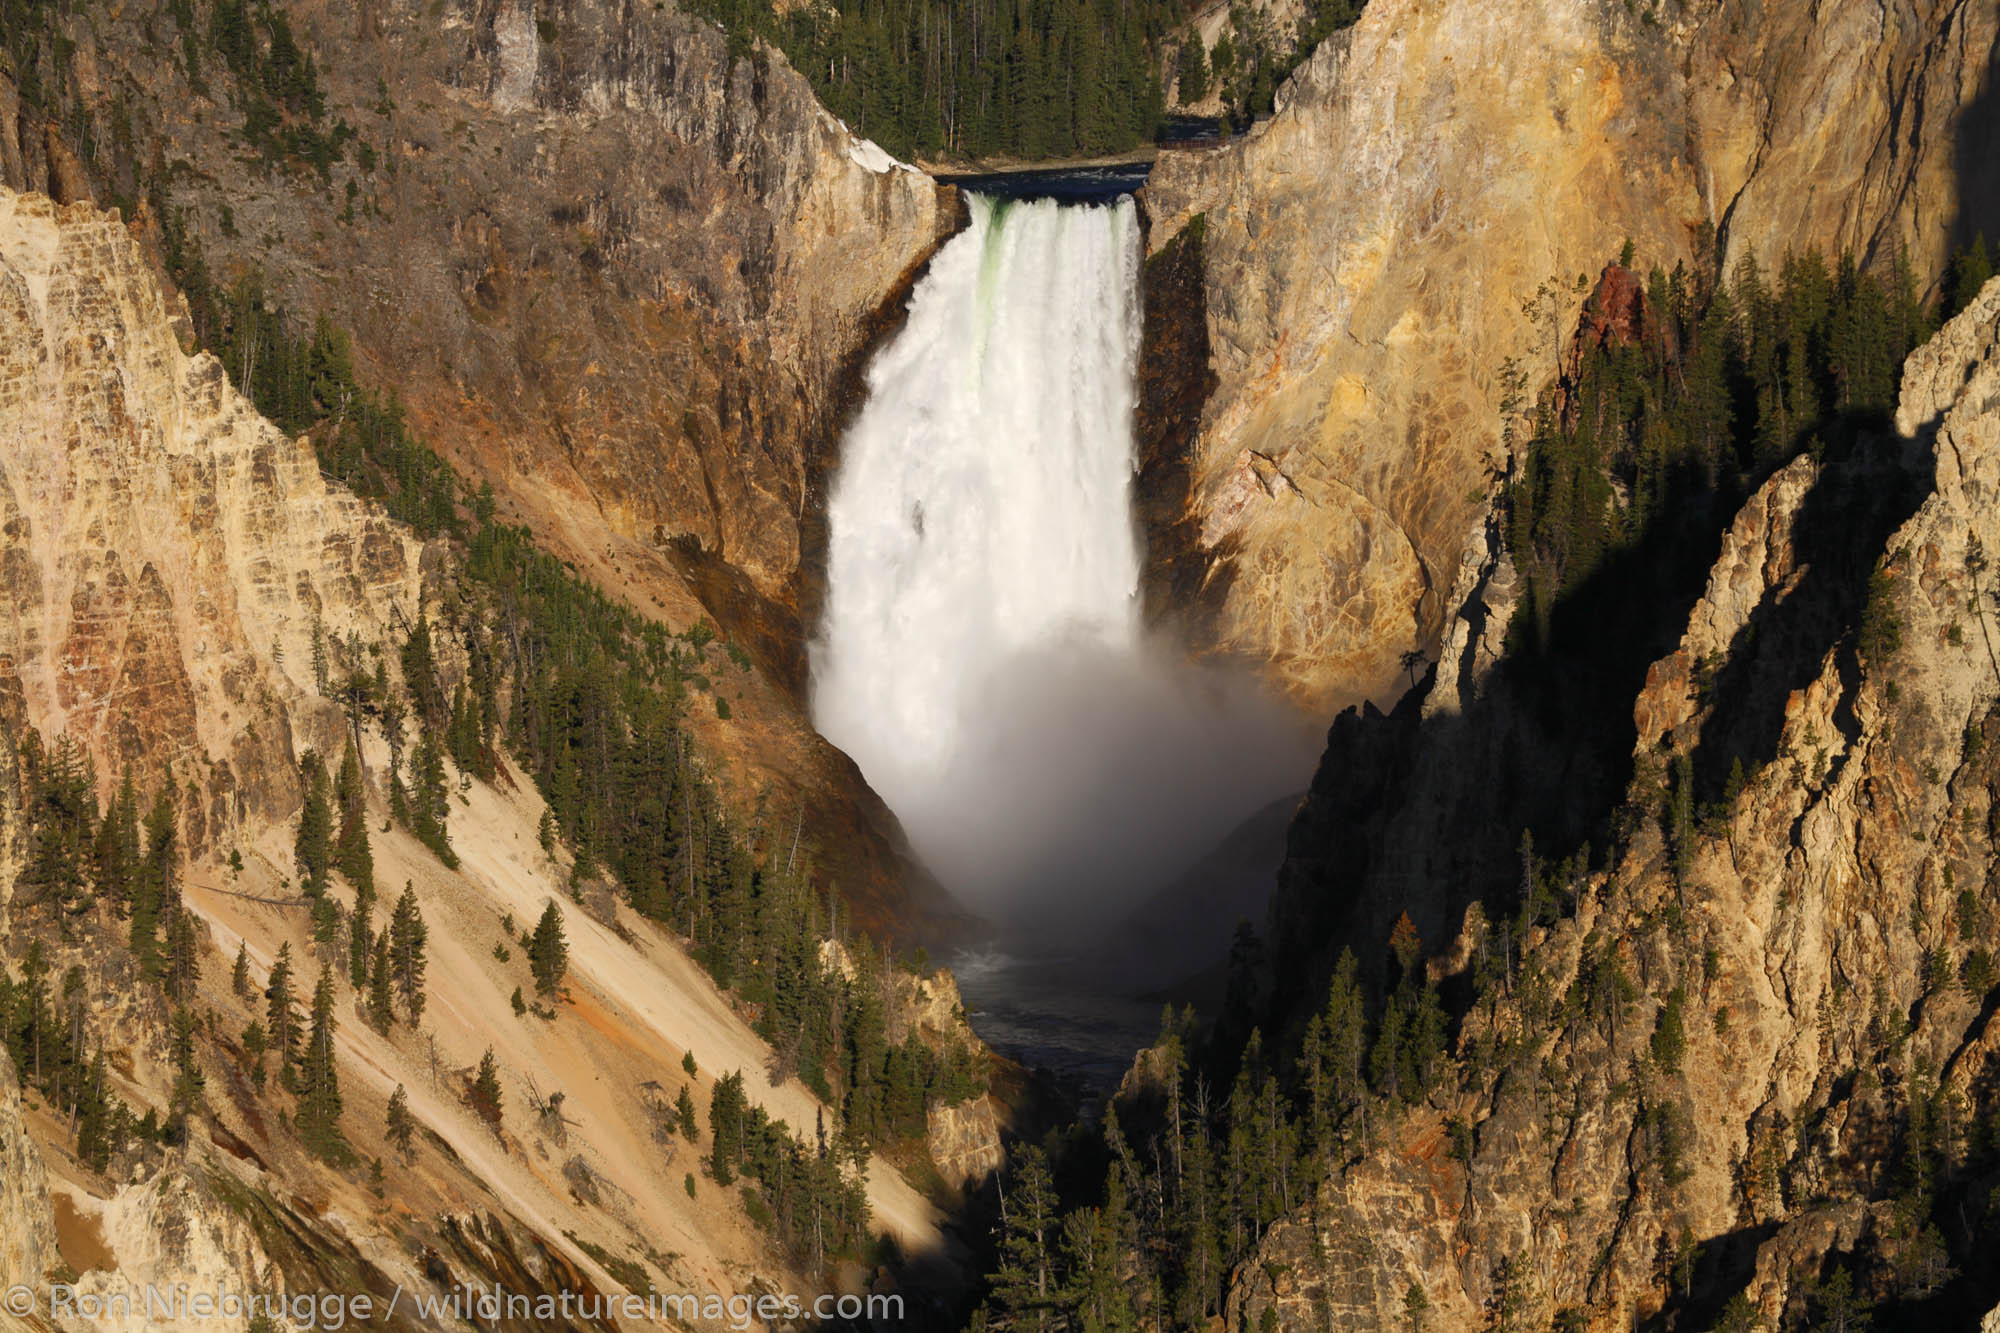 The Lower Falls of the Grand Canyon from Artist Point, Yellowstone National Park, Wyoming.